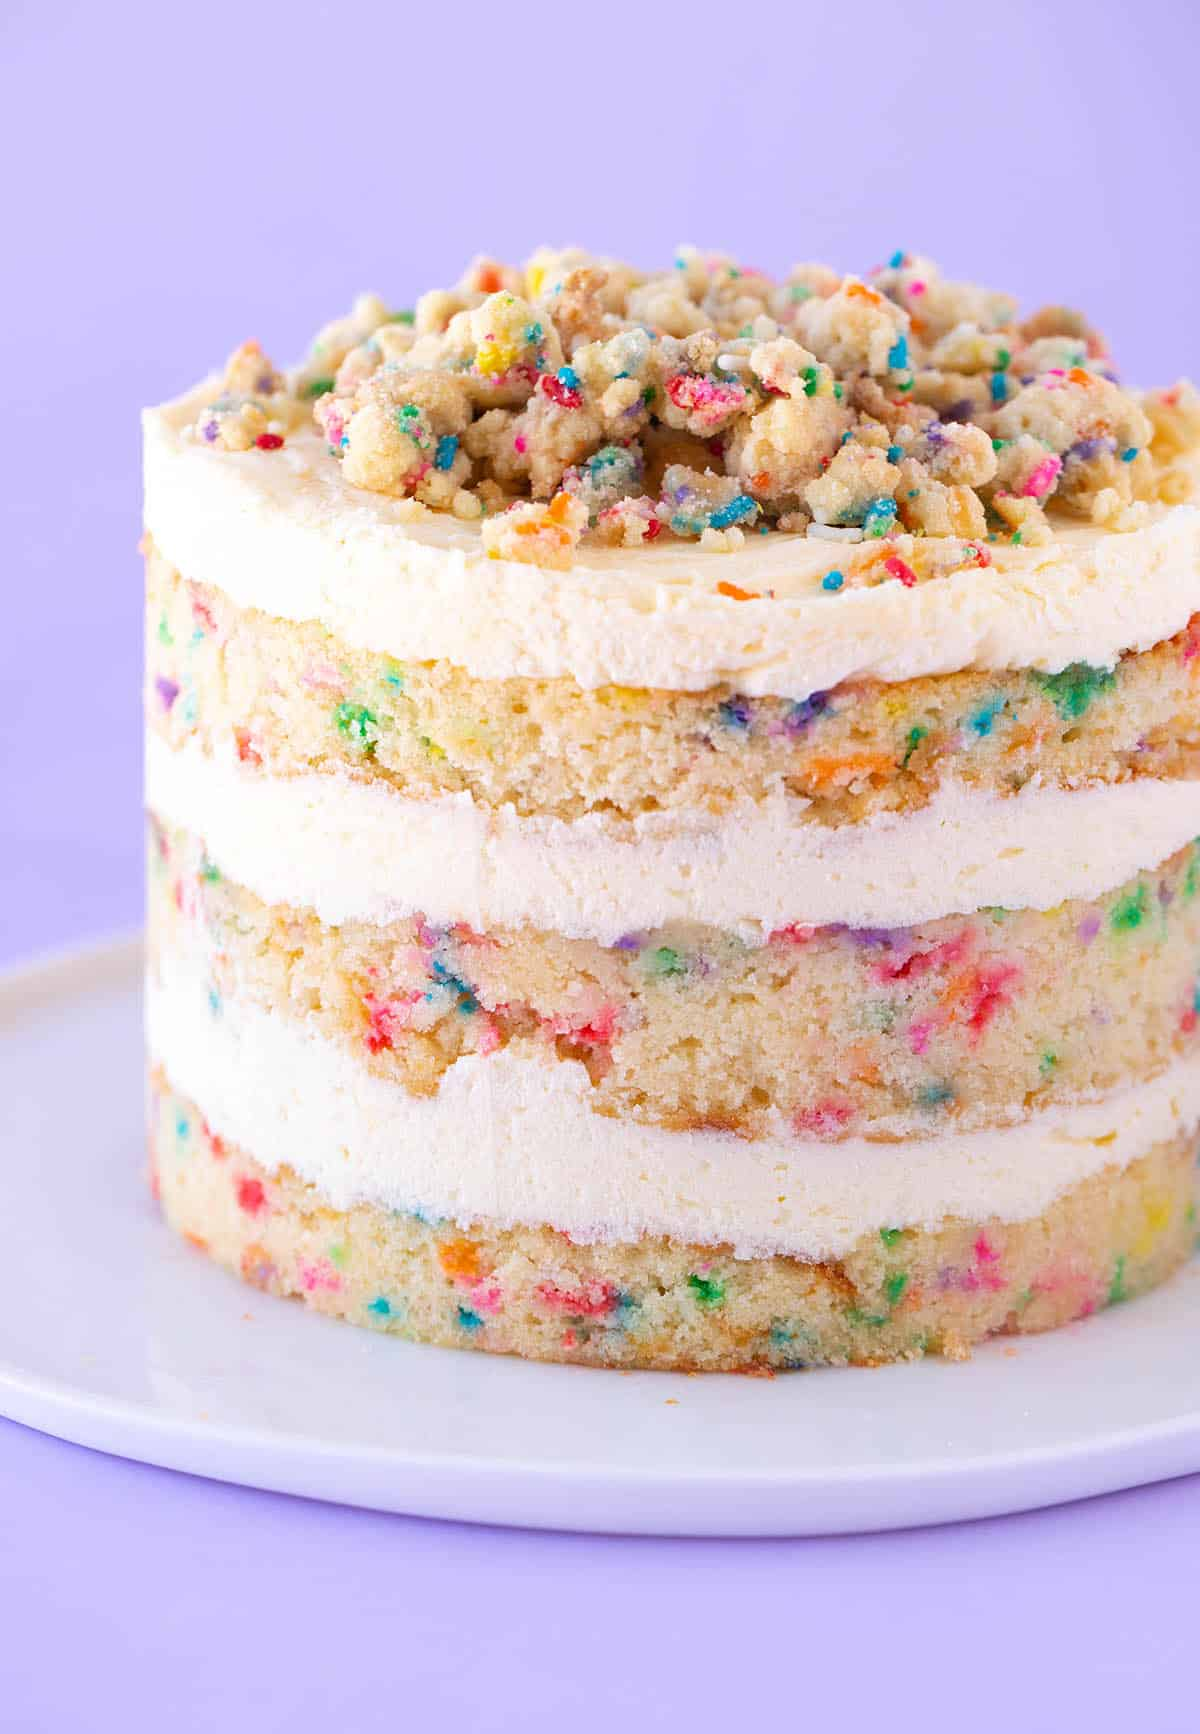 A three layer Birthday Cake decorated in funfetti cookie crumbs